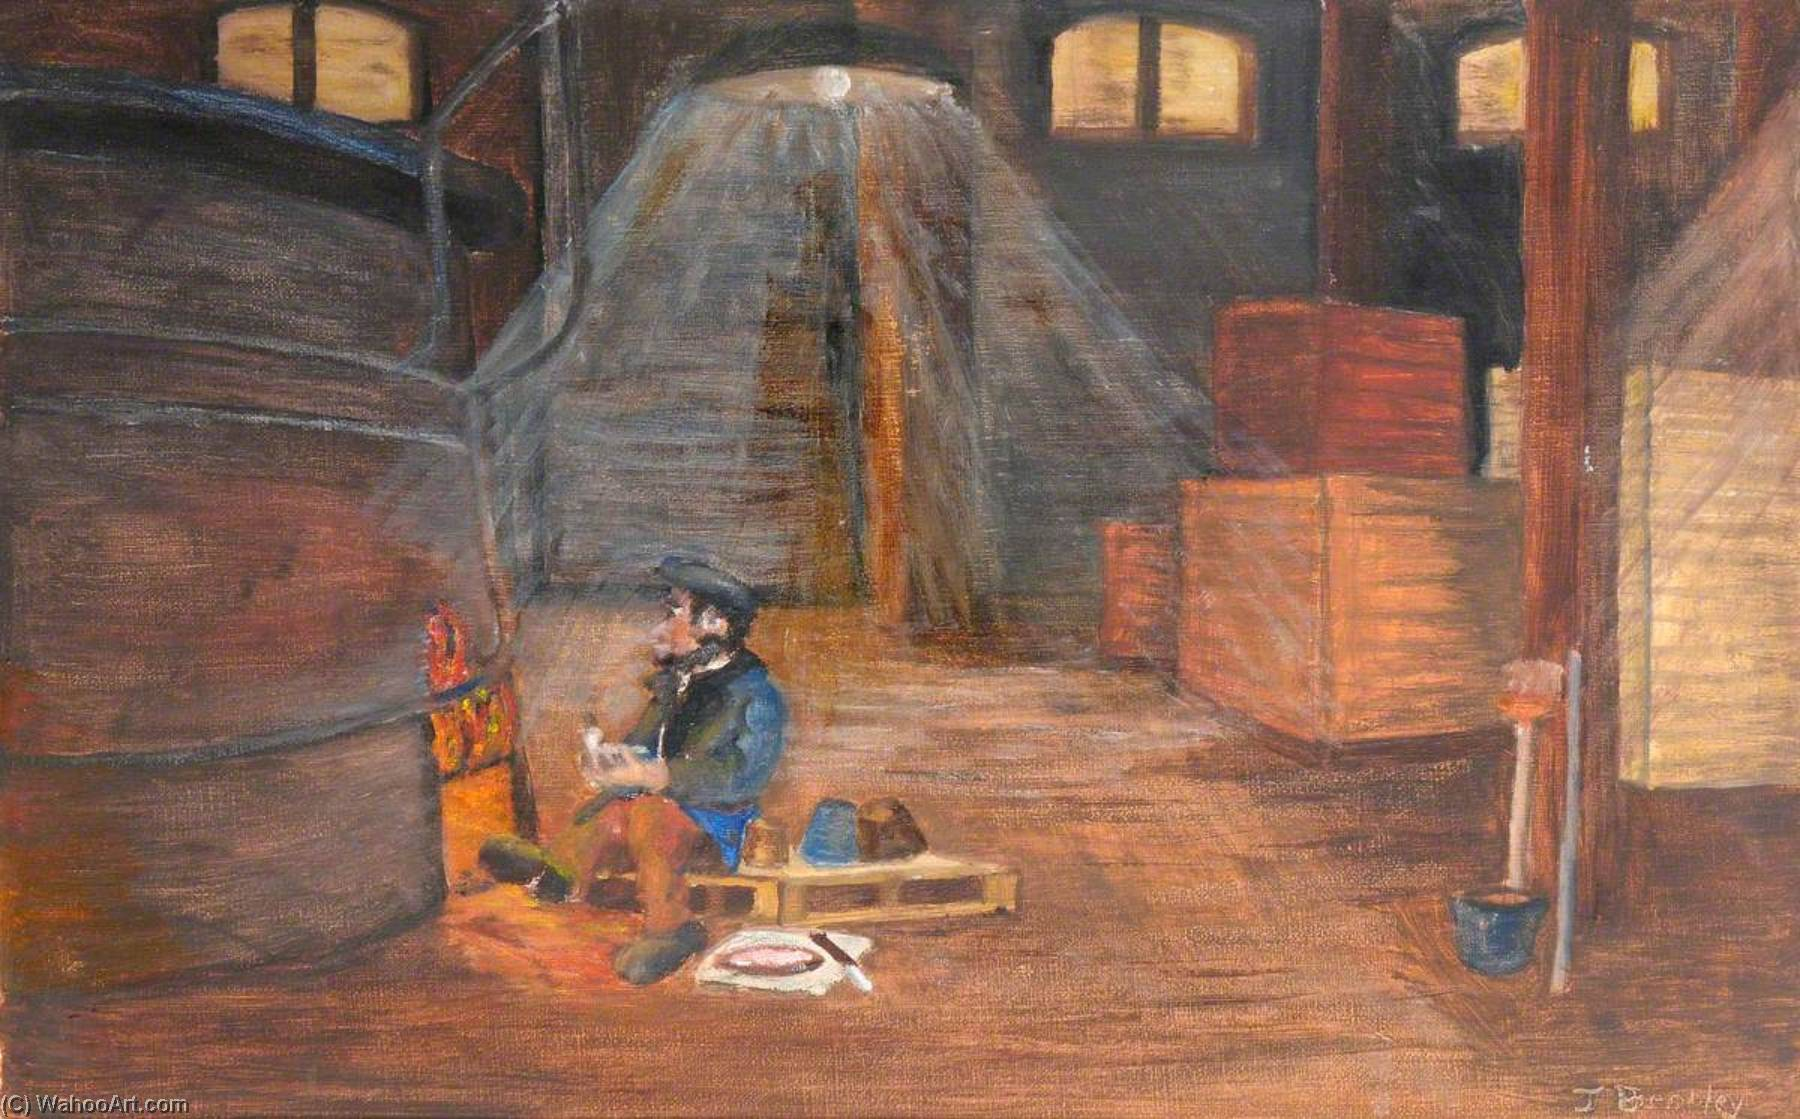 The Night Lodger, Trap Brickworks, Oil On Canvas by James Bentley